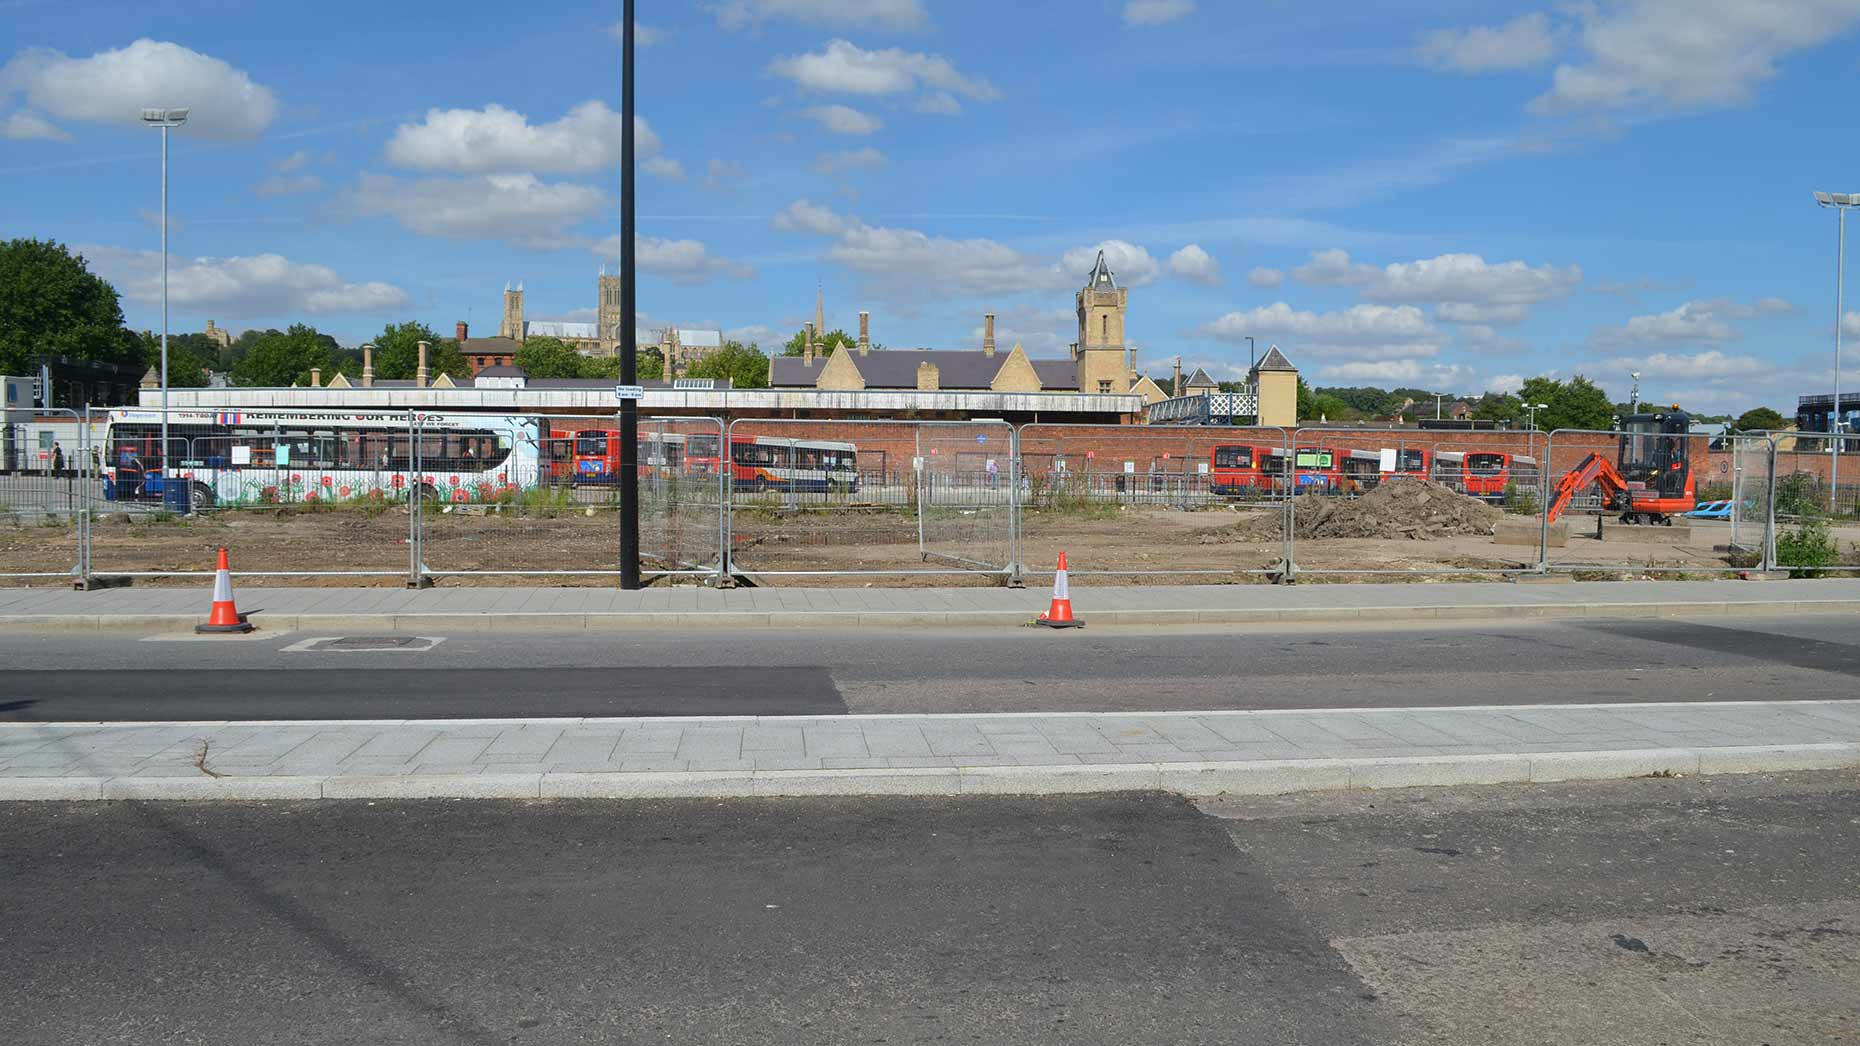 The temporary bus station will be used for 18 months while the new transport hub is being built. Photo: Sophie Bee